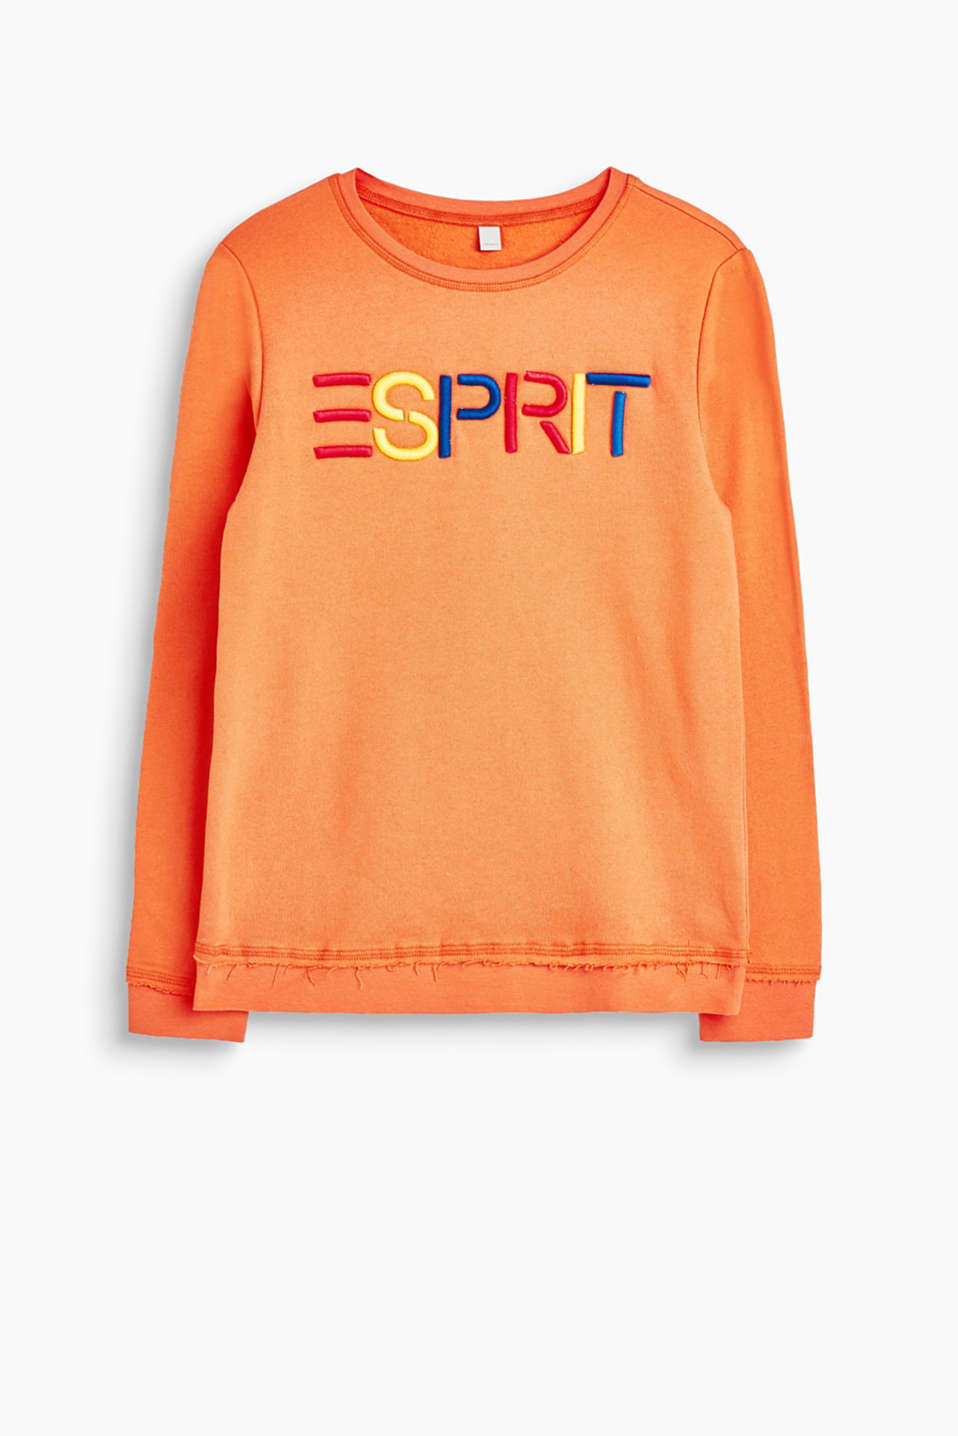 Esprit - Sweatshirt with vibrant 3-d logo embroidery